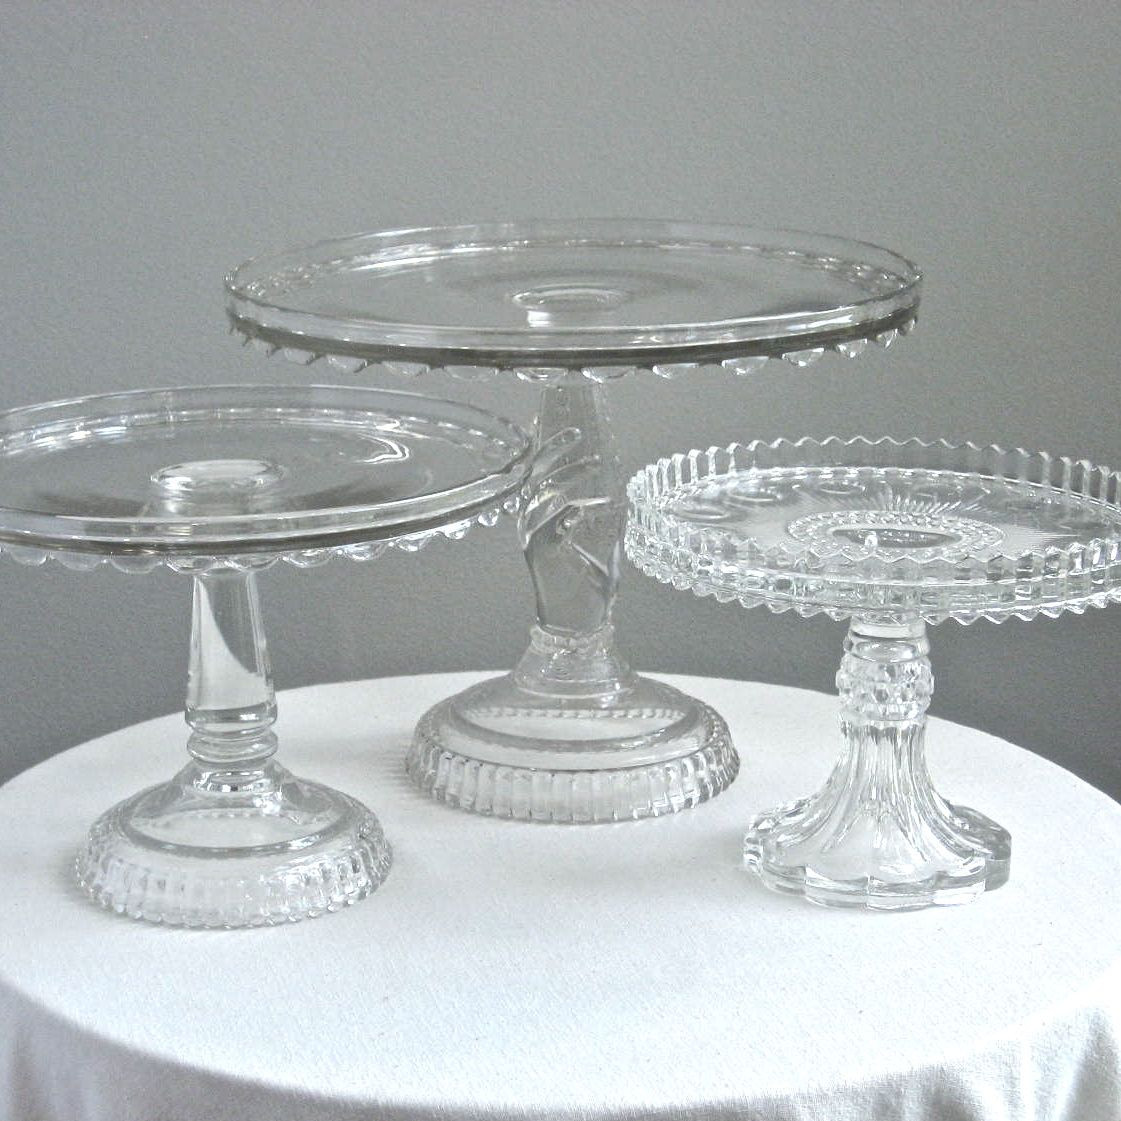 Wedding Cakes Plates  Discount Wedding Cake Stands Wedding and Bridal Inspiration